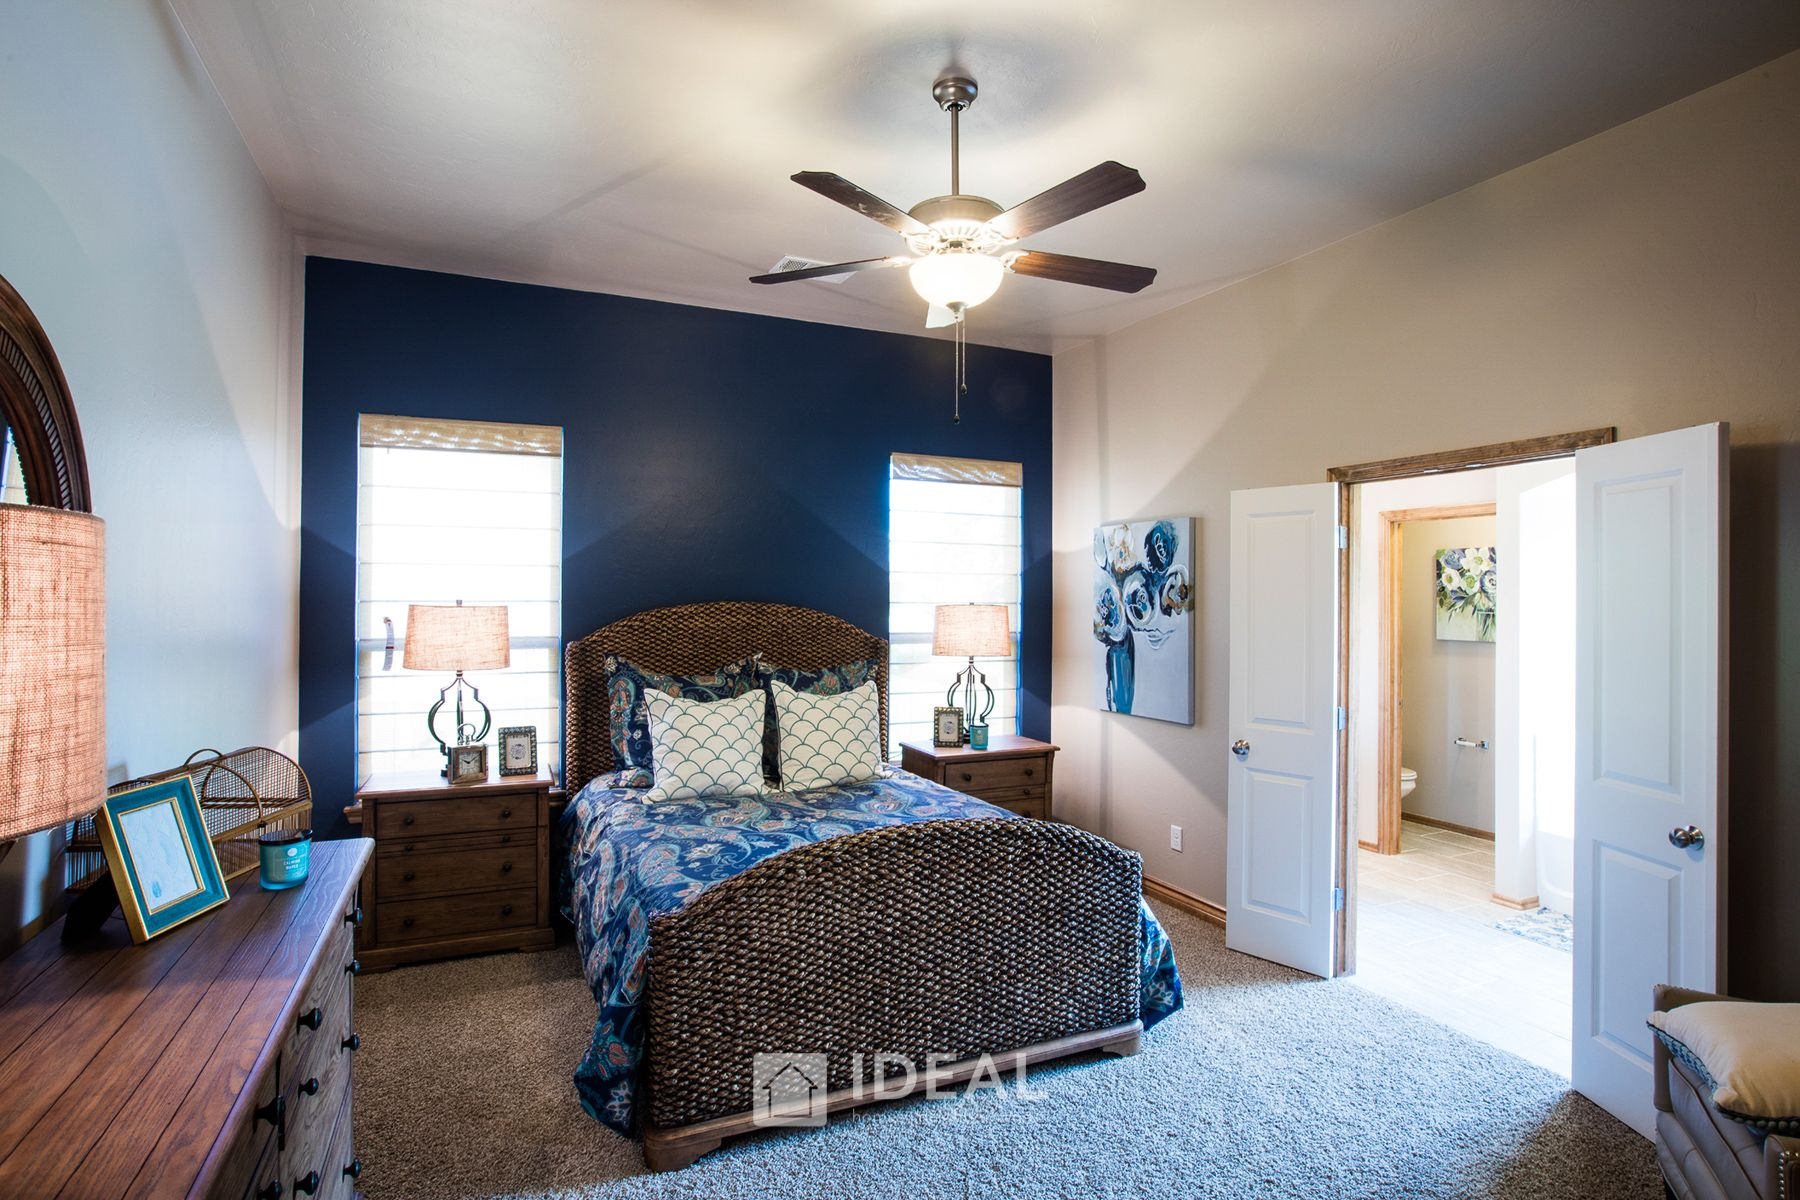 Bedroom featured in the Kendall By Ideal Homes in Oklahoma City, OK